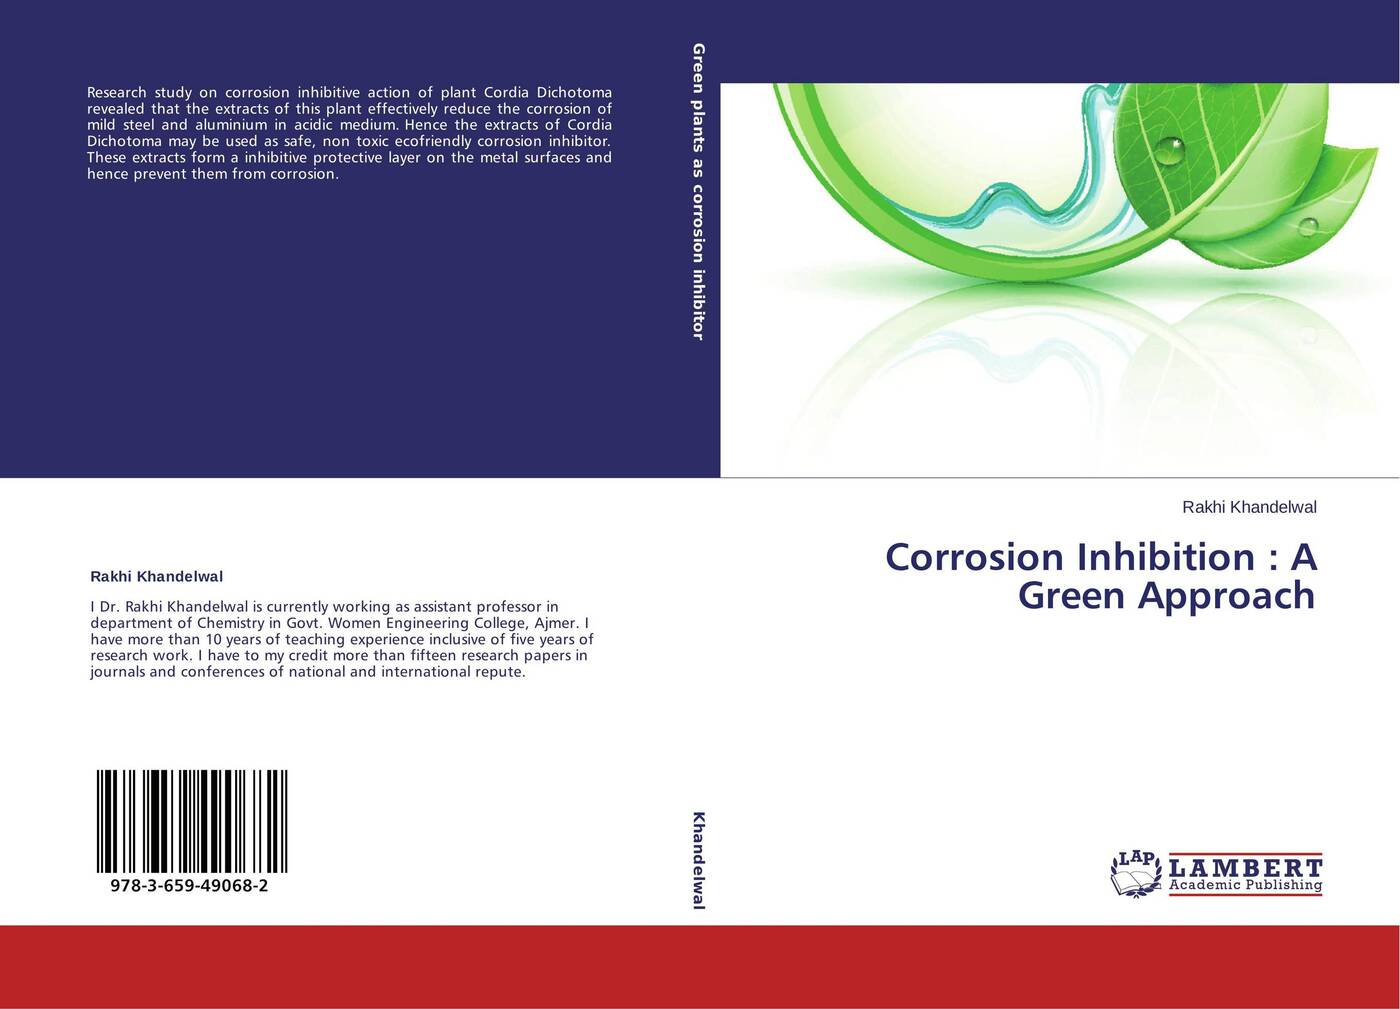 Rakhi Khandelwal Corrosion Inhibition : A Green Approach corrosion and corrosion control of tin in organic acids solutions